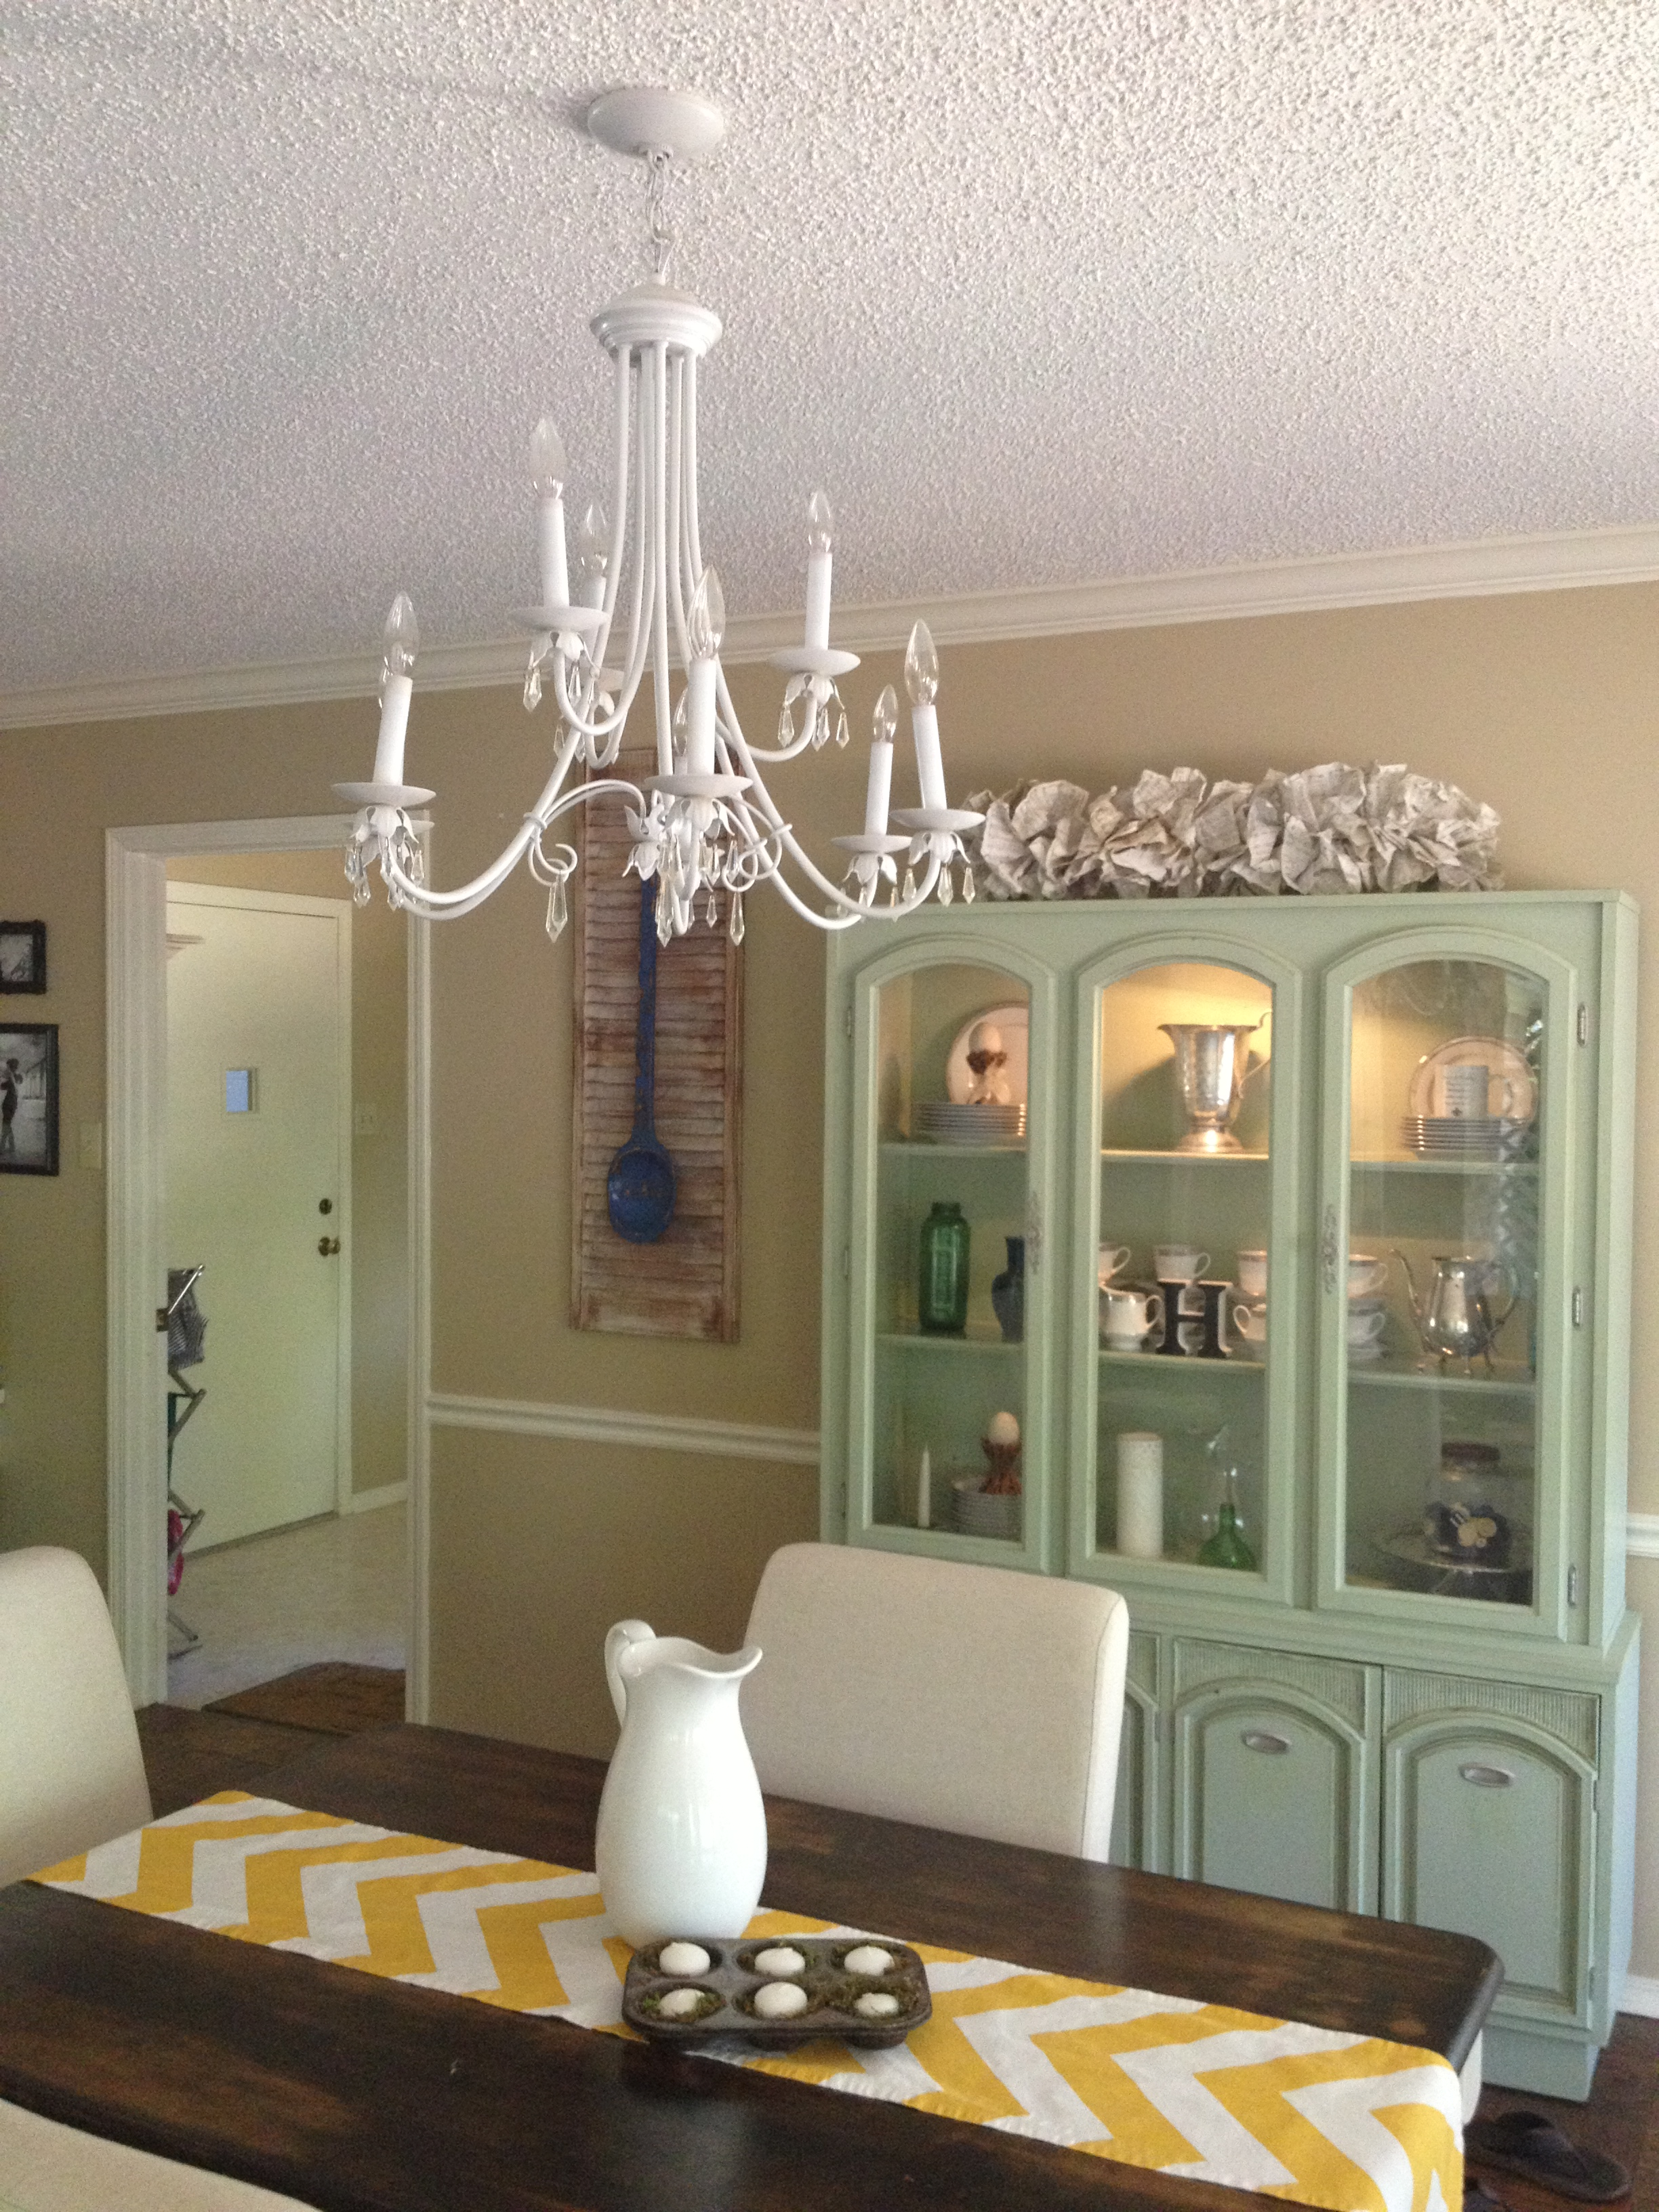 Vintage chandelier makeover all things new interiors photo 2 40 aloadofball Images